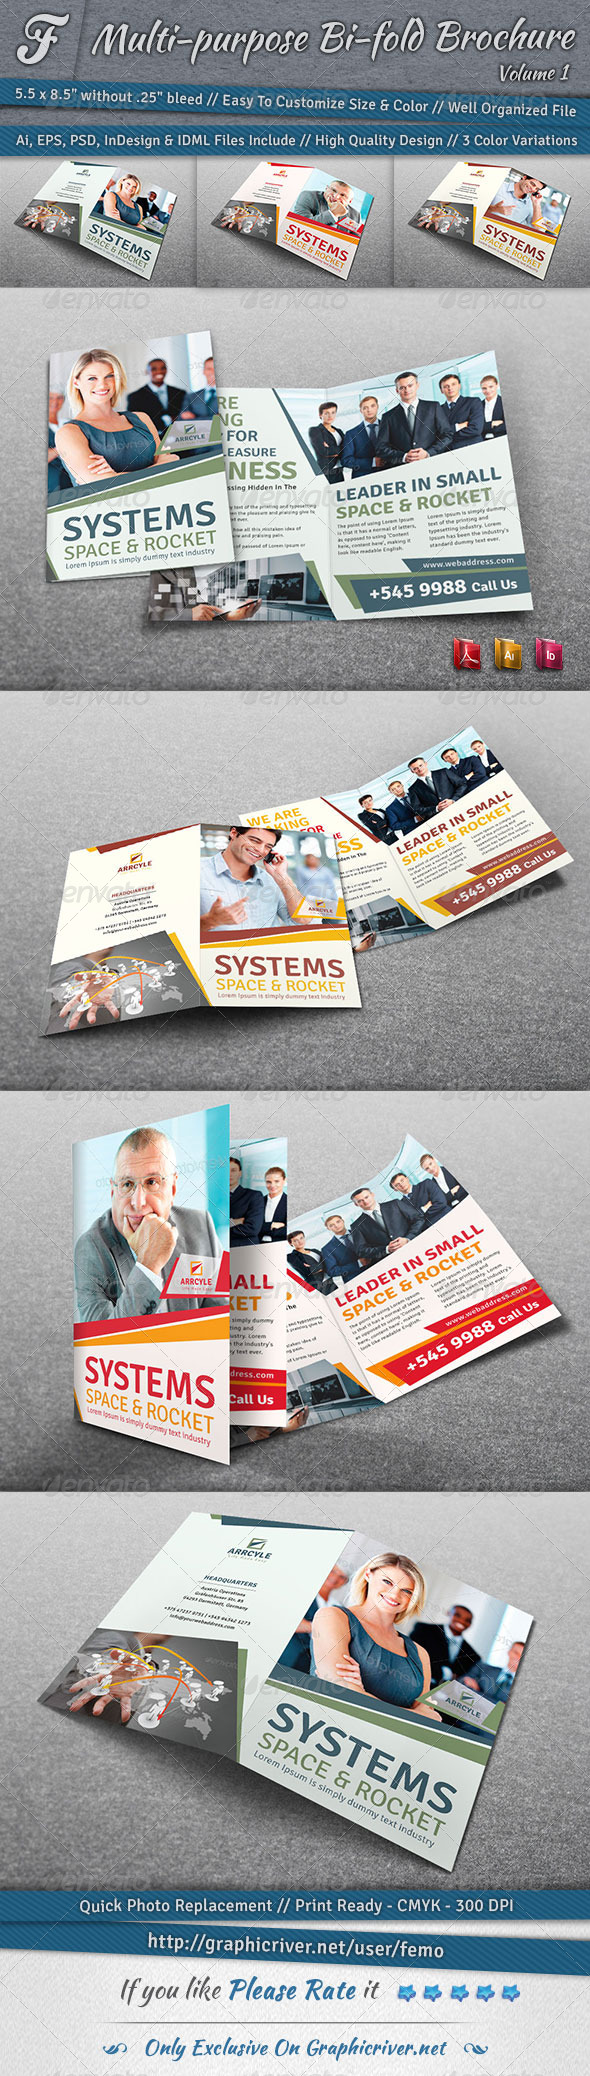 Multi-purpose Bi-fold Brochure | Volume 1 - Corporate Brochures